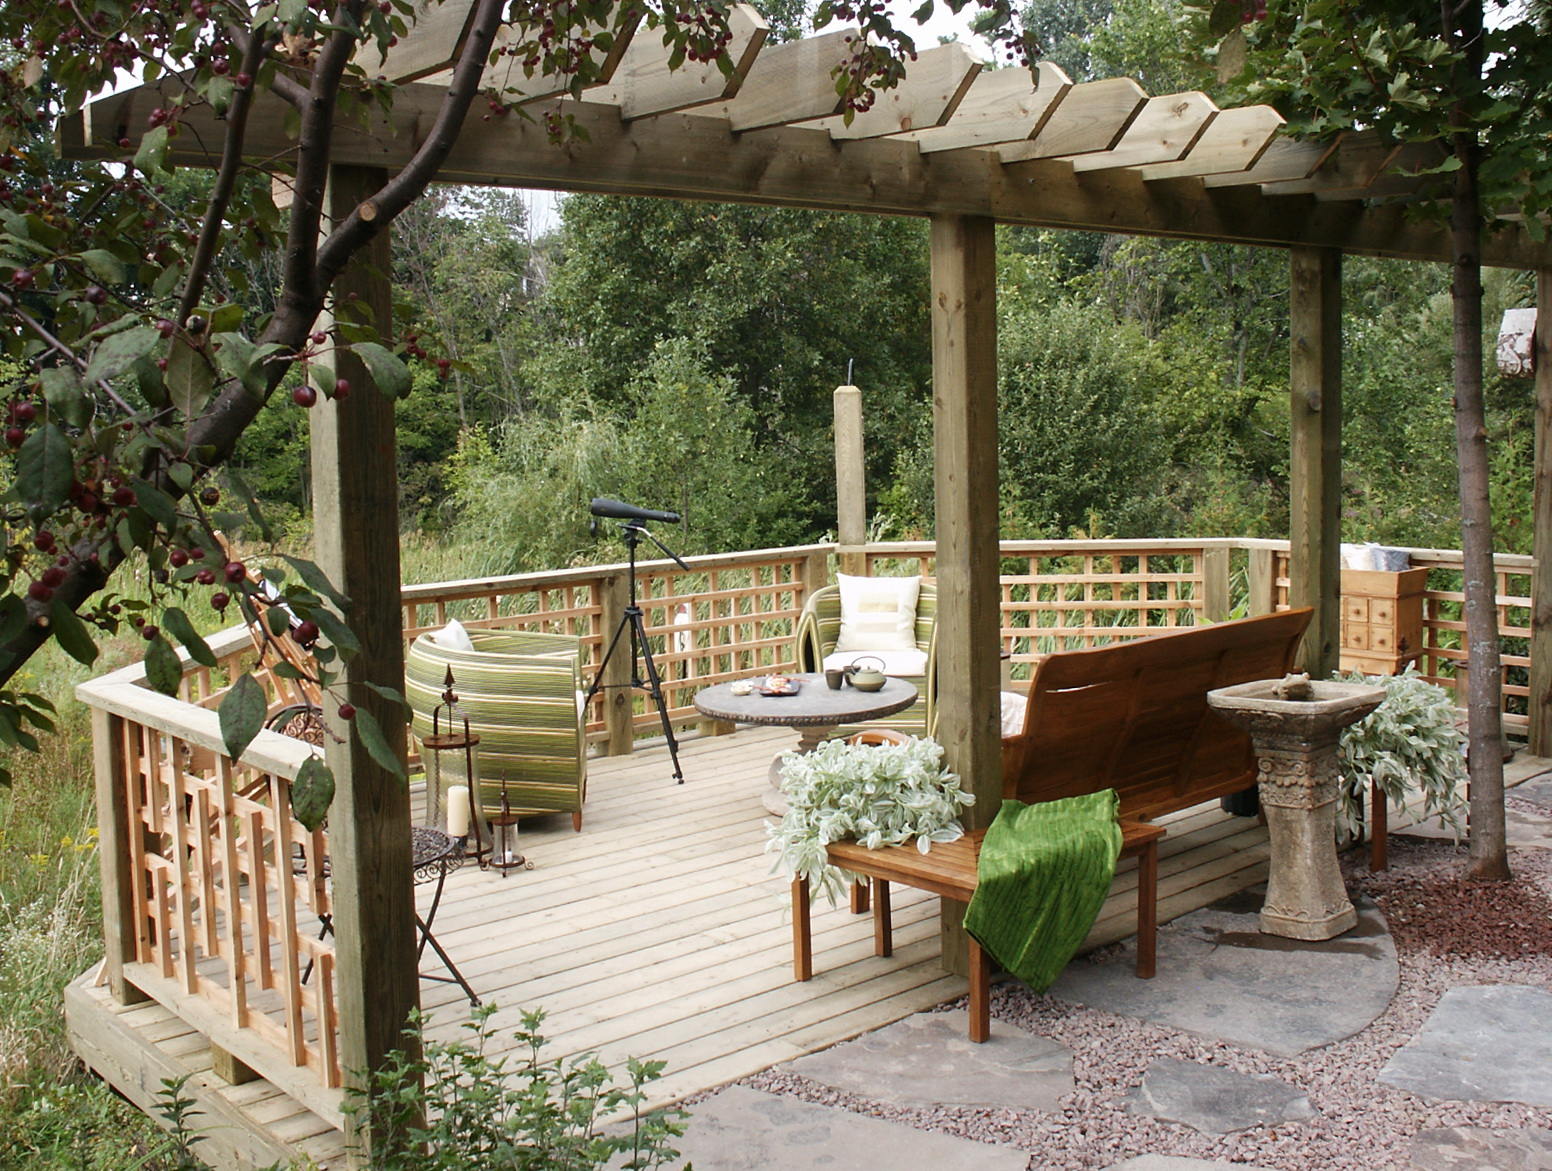 Patio Vs Deck Price  Home Design Ideas. Aluminum Patio Covers Vancouver Island. Restaurant Patio Equipment. Cheap Patio Bricks Or Pavers. Landscape Patio Lighting. Outdoor Living Pool And Patio Reviews. Affordable Outdoor Dining Furniture. Gable Patio Roof Plans. Small Patio Tables At Big Lots